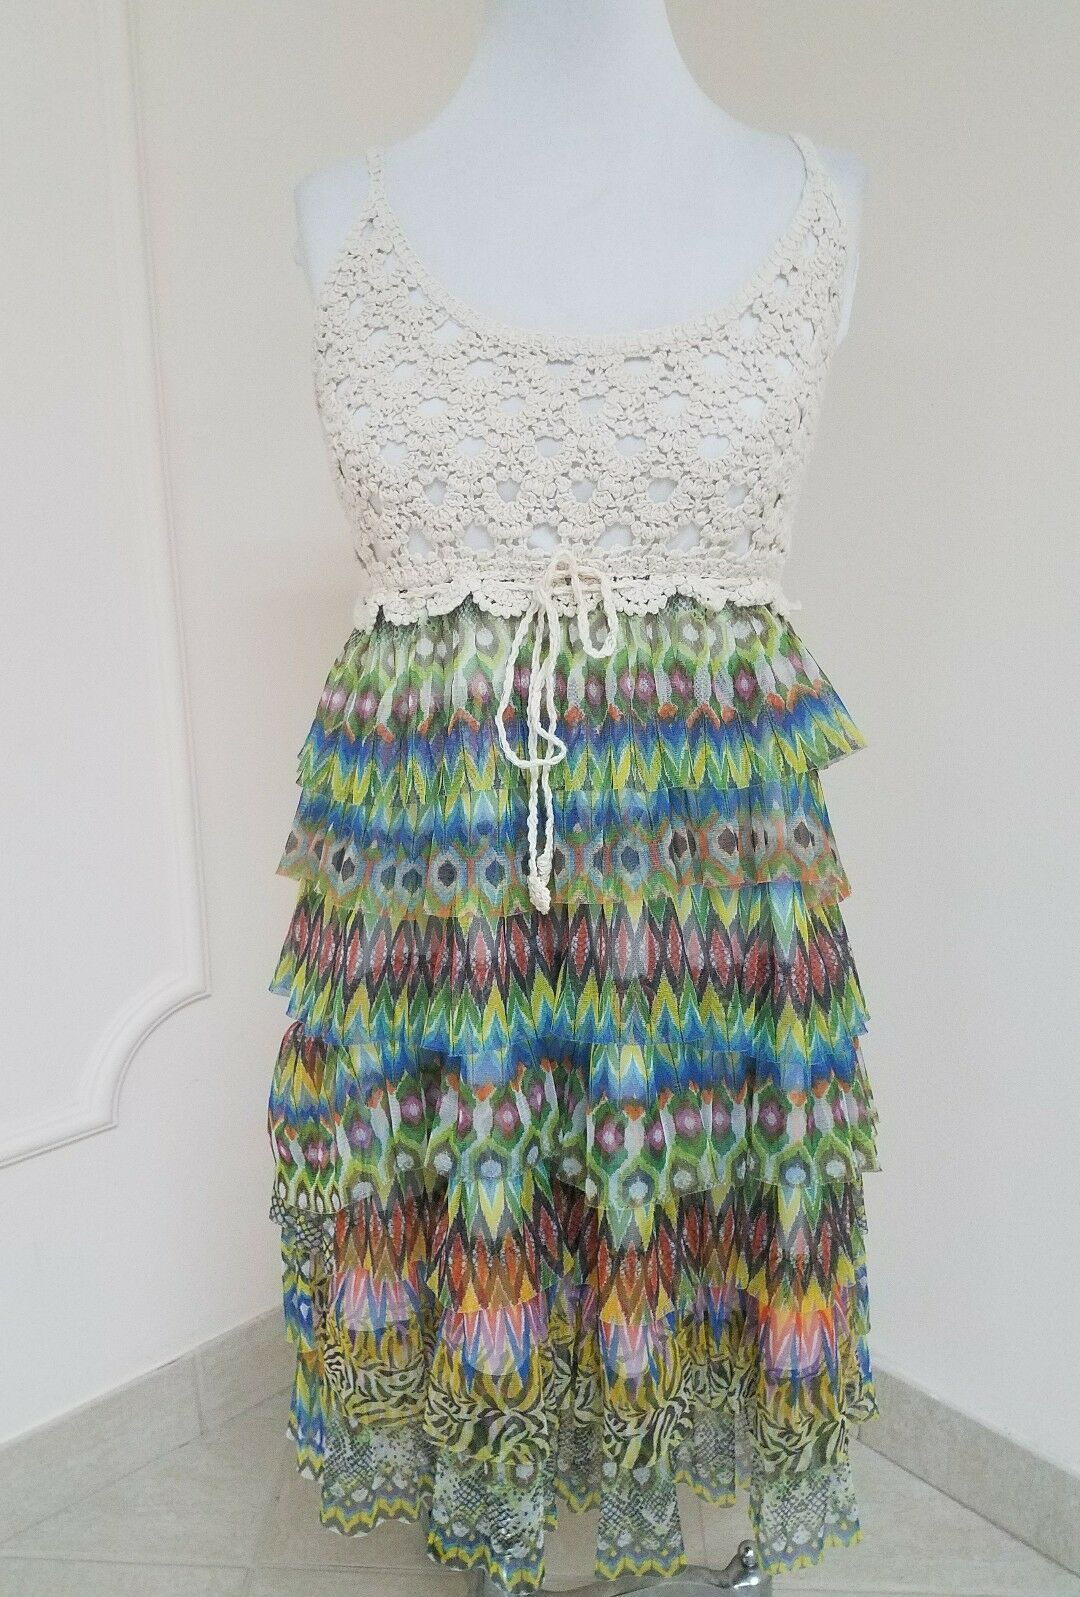 J GEE DRESS CROCHED LAYERS STITCHED NETTING  MULTI COLOR SZ. M  EXTRA NICE